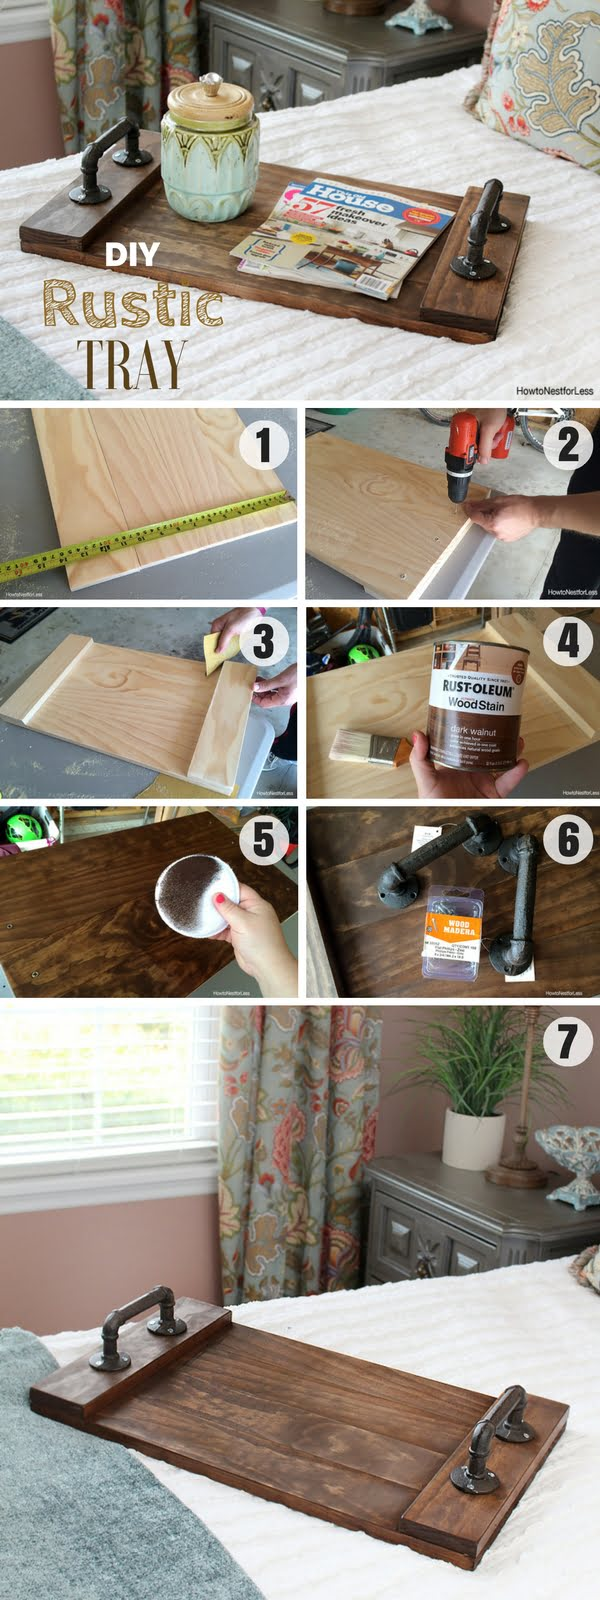 59 Incredibly Simple Rustic Décor Ideas That Can Make Your: 18 Easy DIY Wood Craft Project Ideas On A Budget